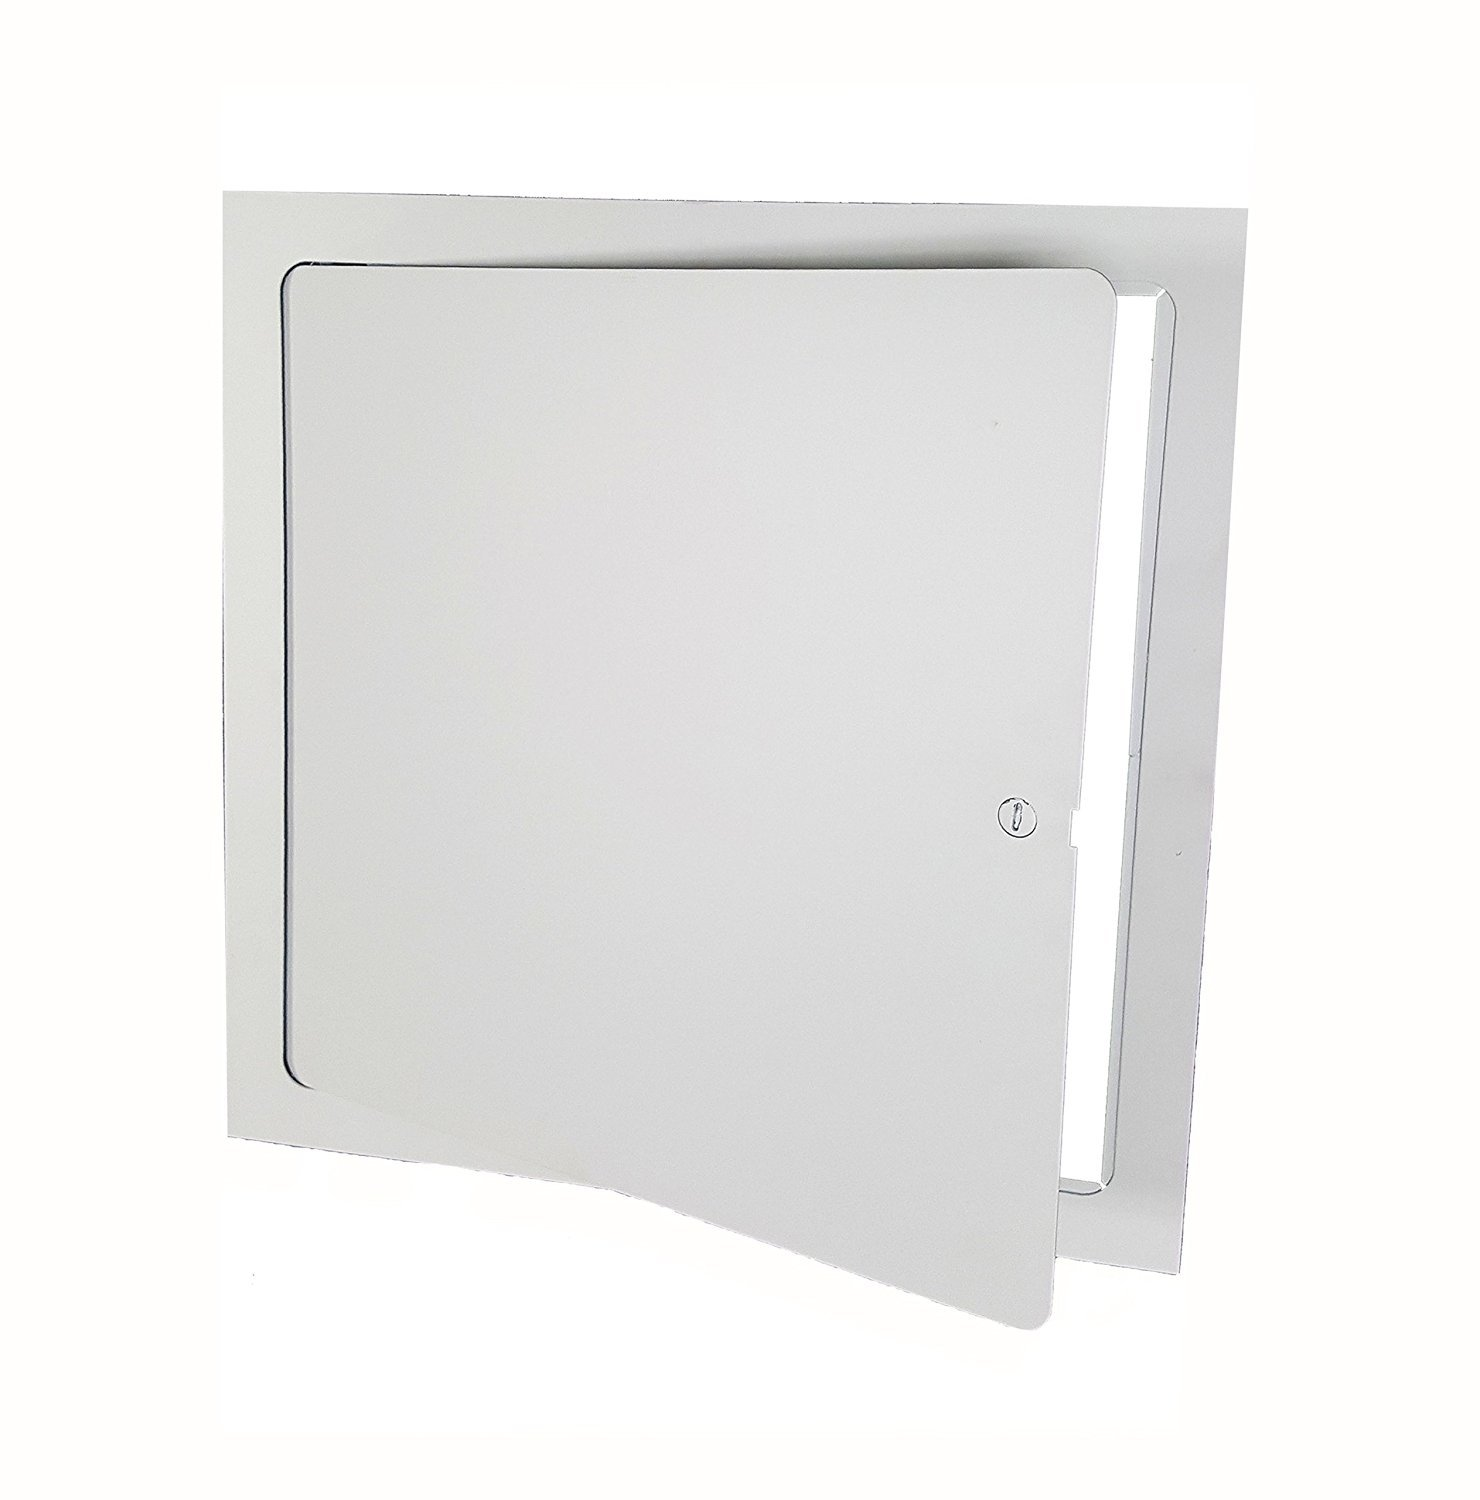 Premier FL-12 x 12 Flush Access Door, Steel, Powder Coated White by Premier Access Doors